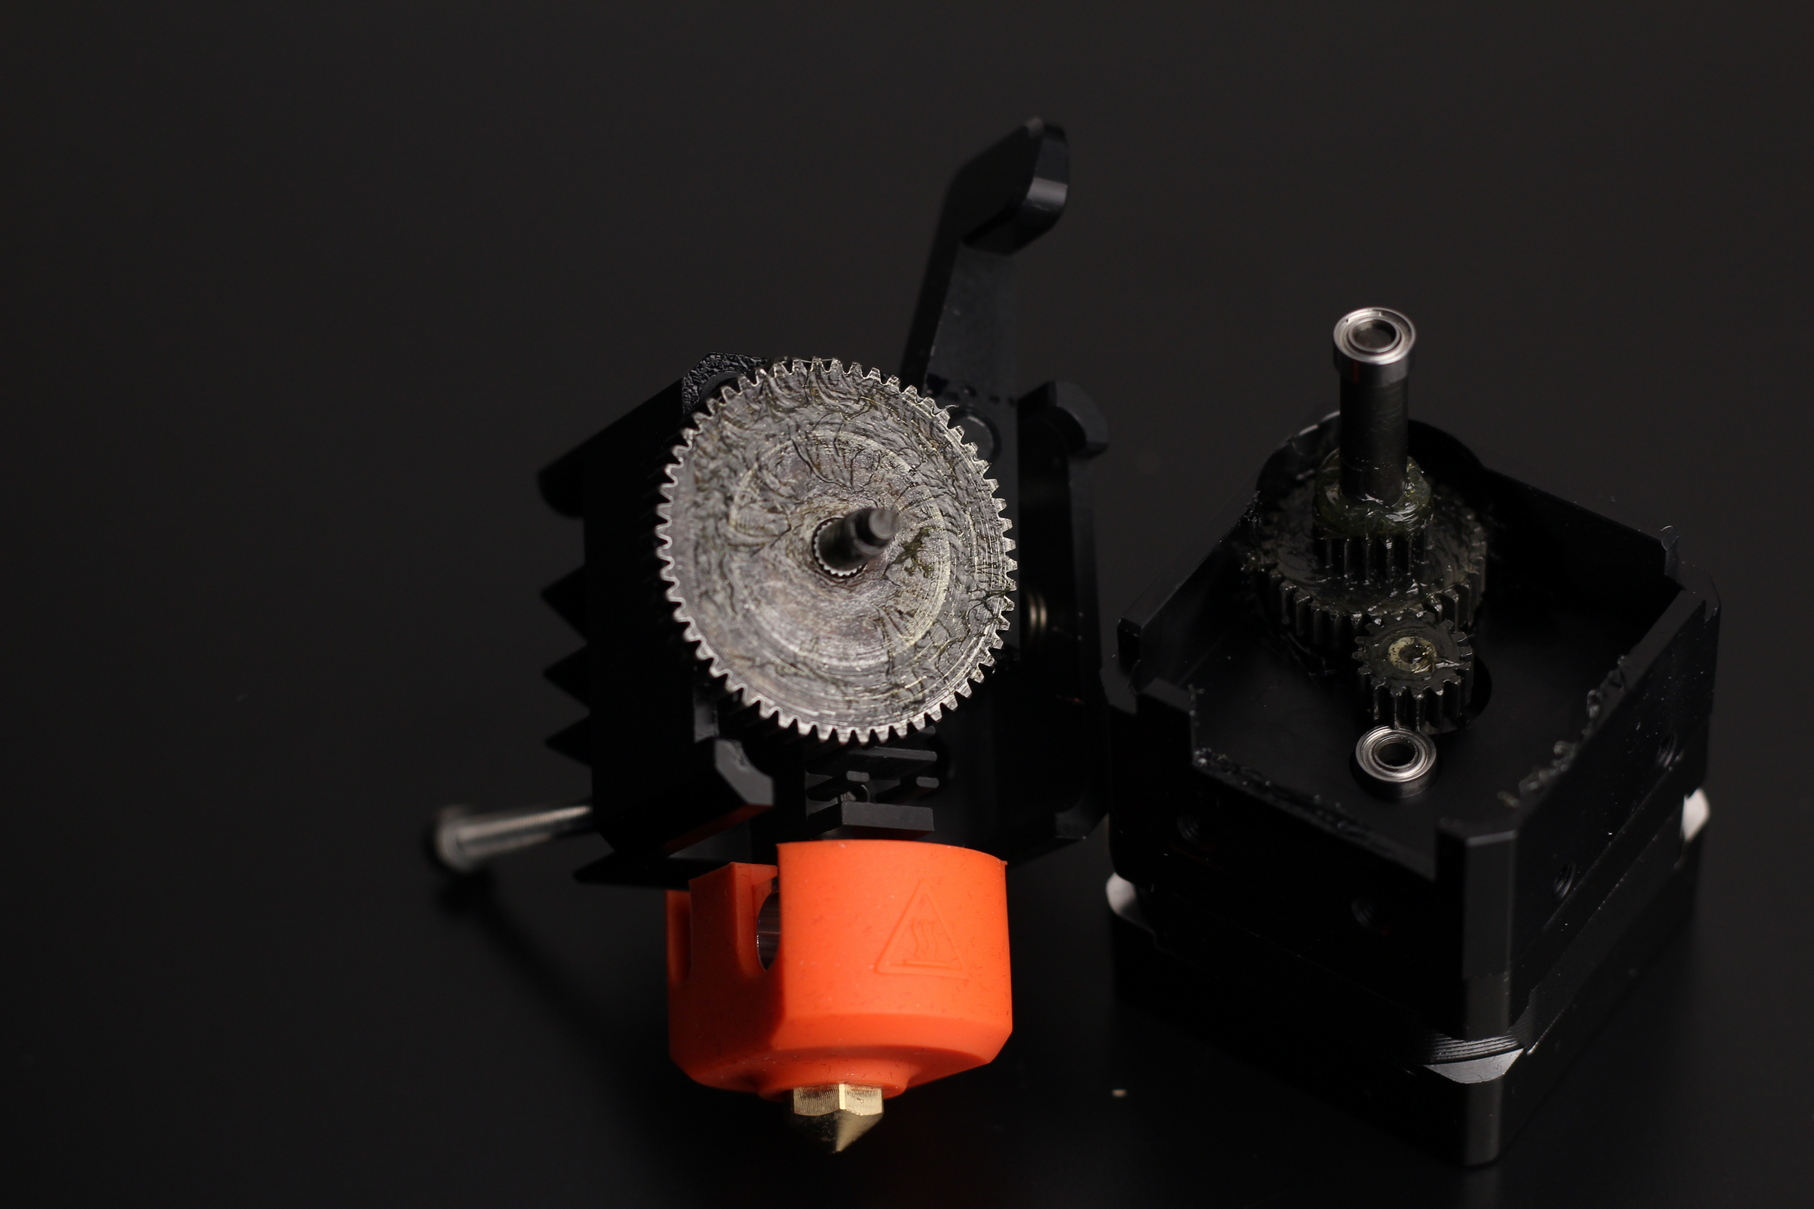 BIQU H2 Gear Issues Grease | BIQU H2 Extruder Review: Lightweight Direct Drive Extruder